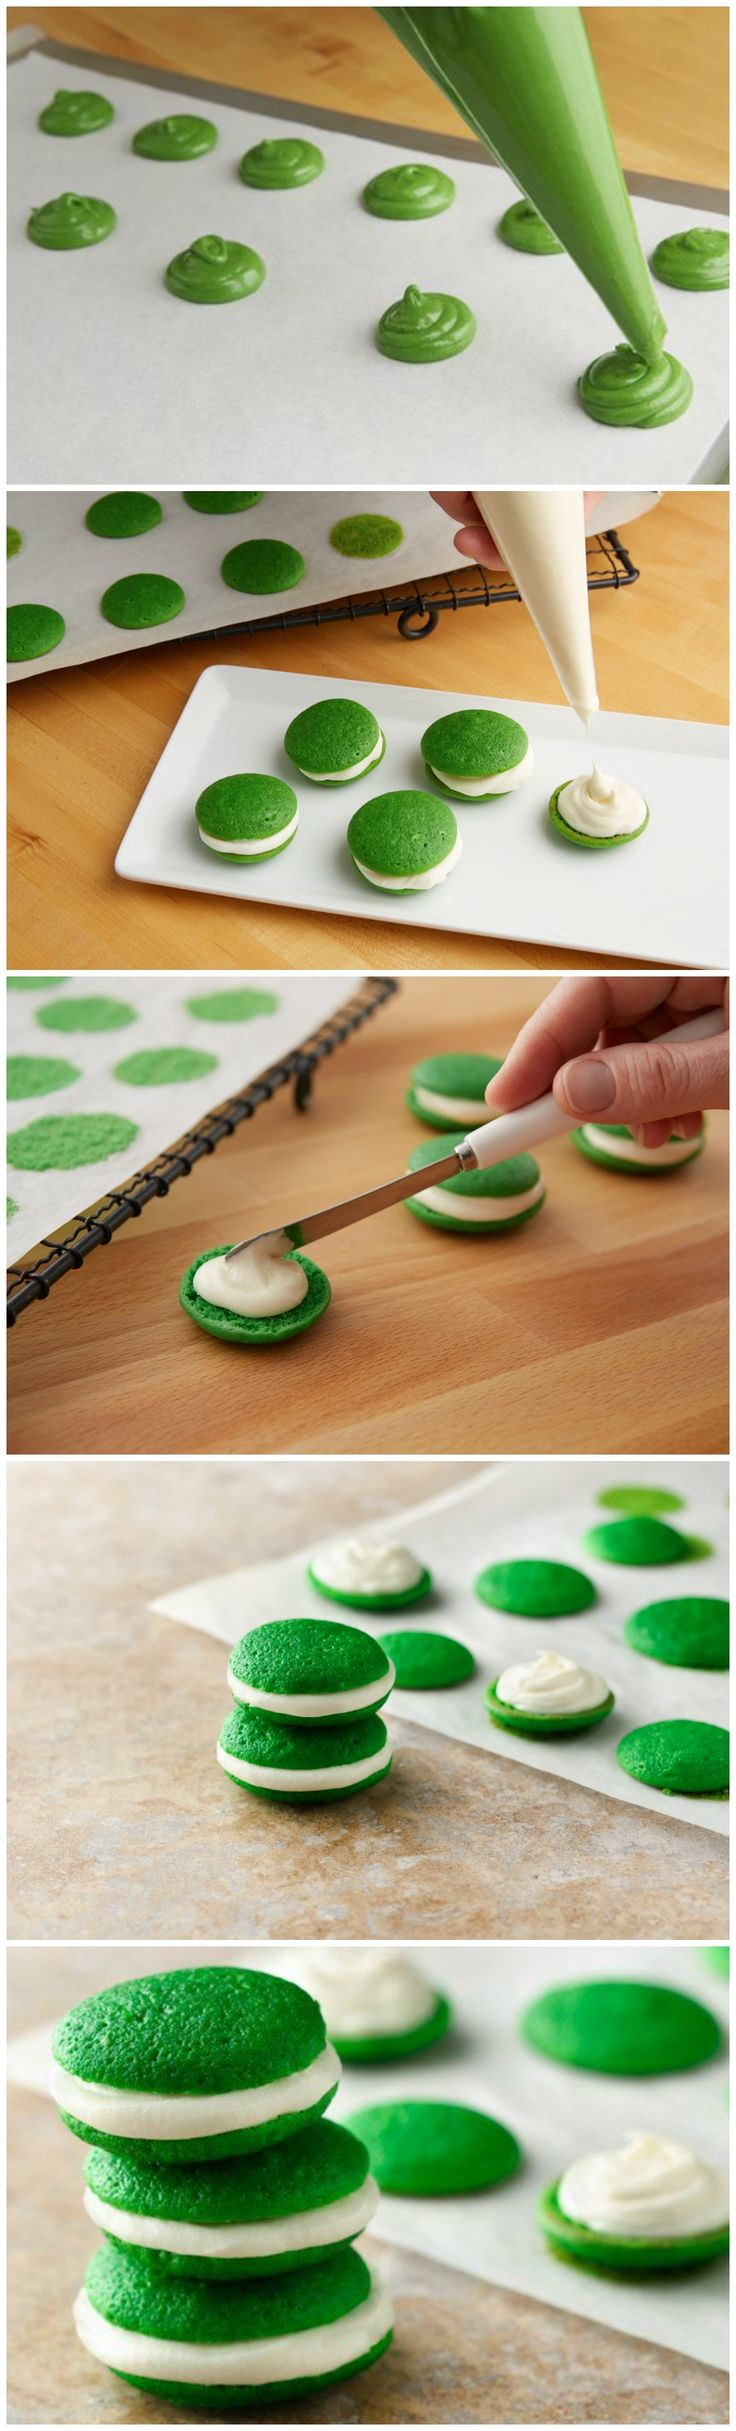 These look mysteriously easy to make...Mini Whoopie Pies!!!  So cute for St. Patrick's day!